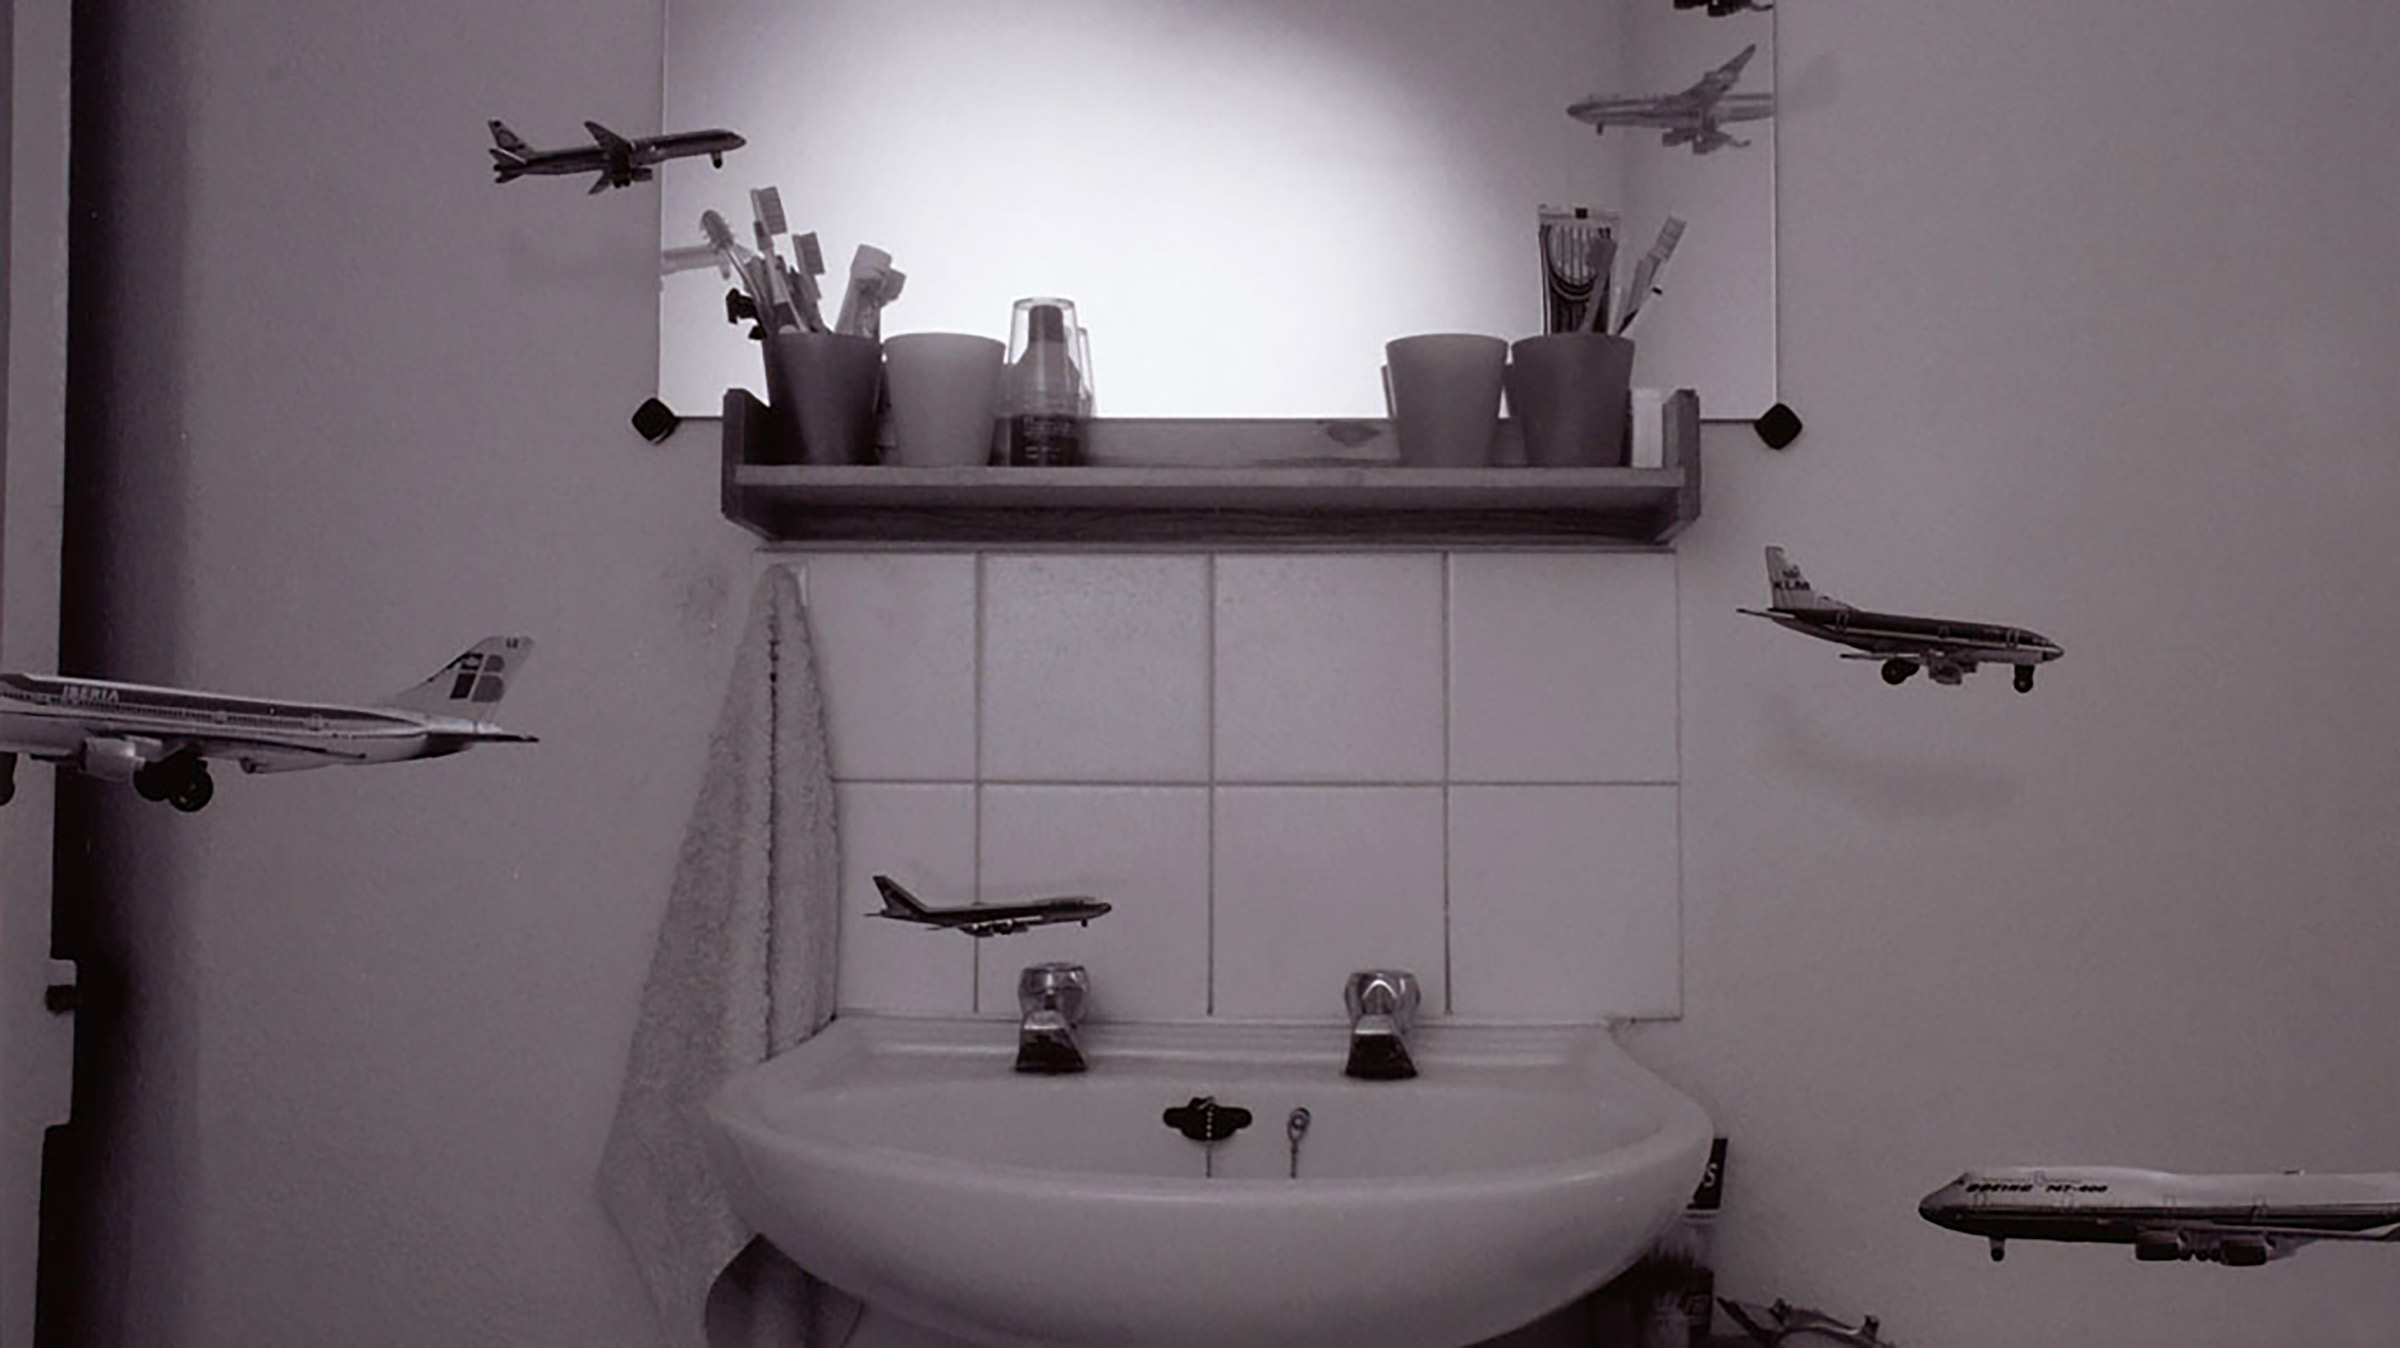 Black and white photo. Small miniature planes flying around in a bathroom.